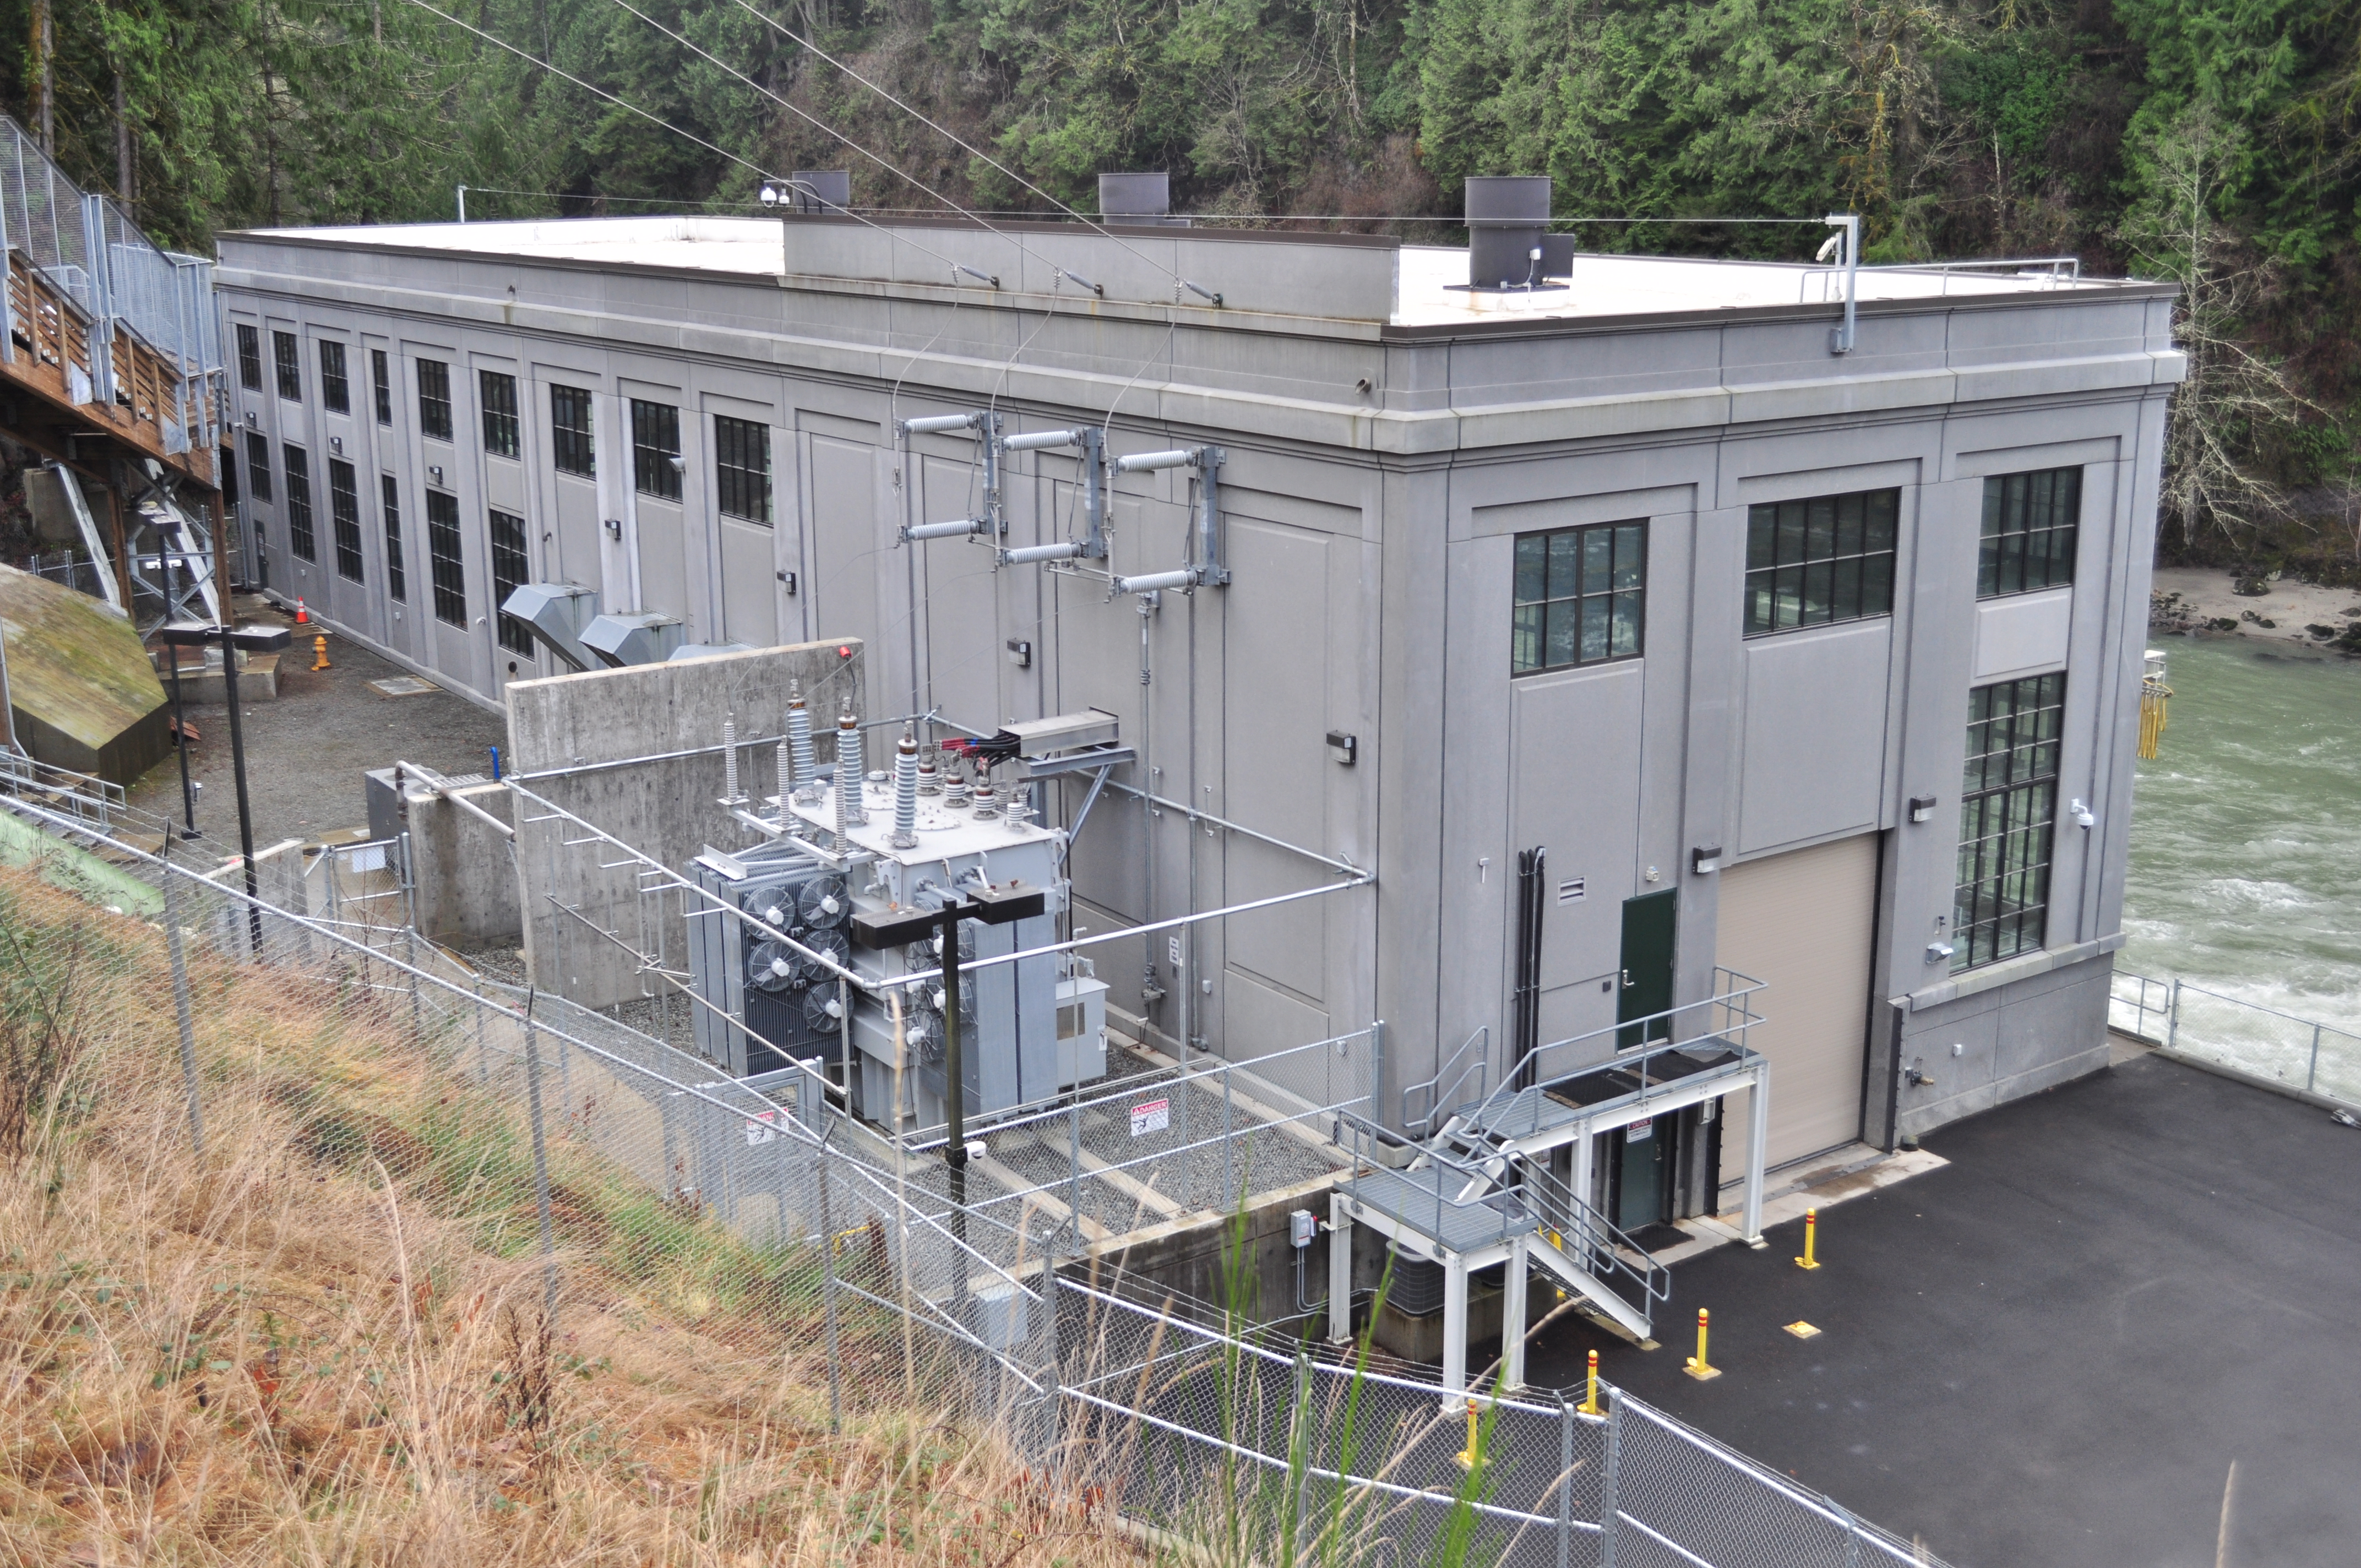 Snoqualmie Falls Hydroelectric Plant - Wikipedia